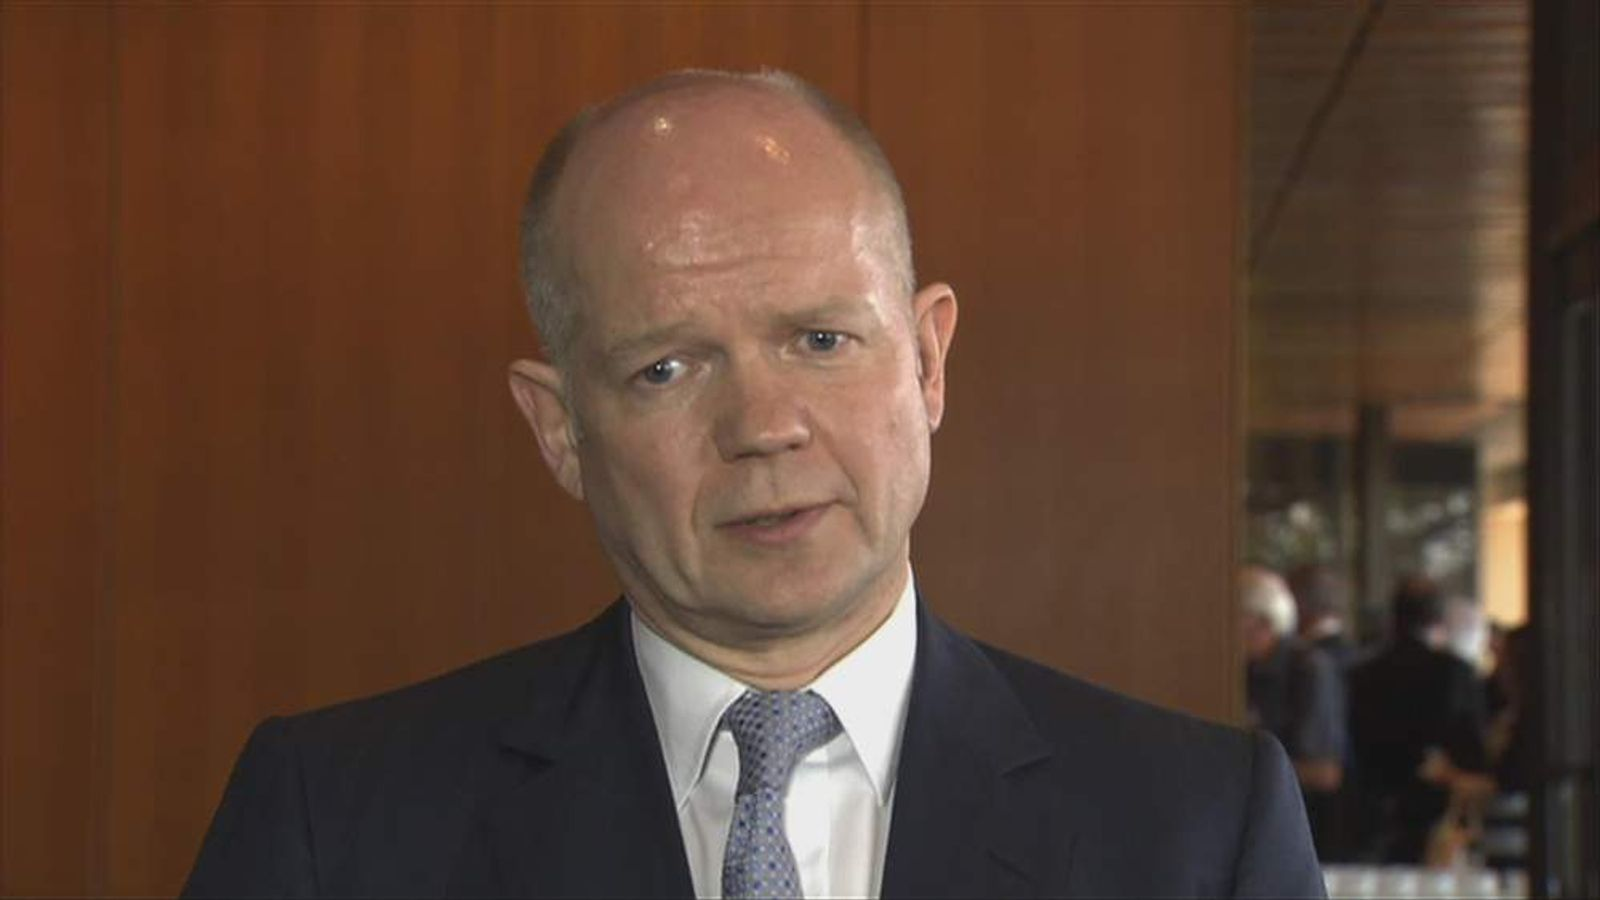 William Hague answers questions on Algeria hostage crisis